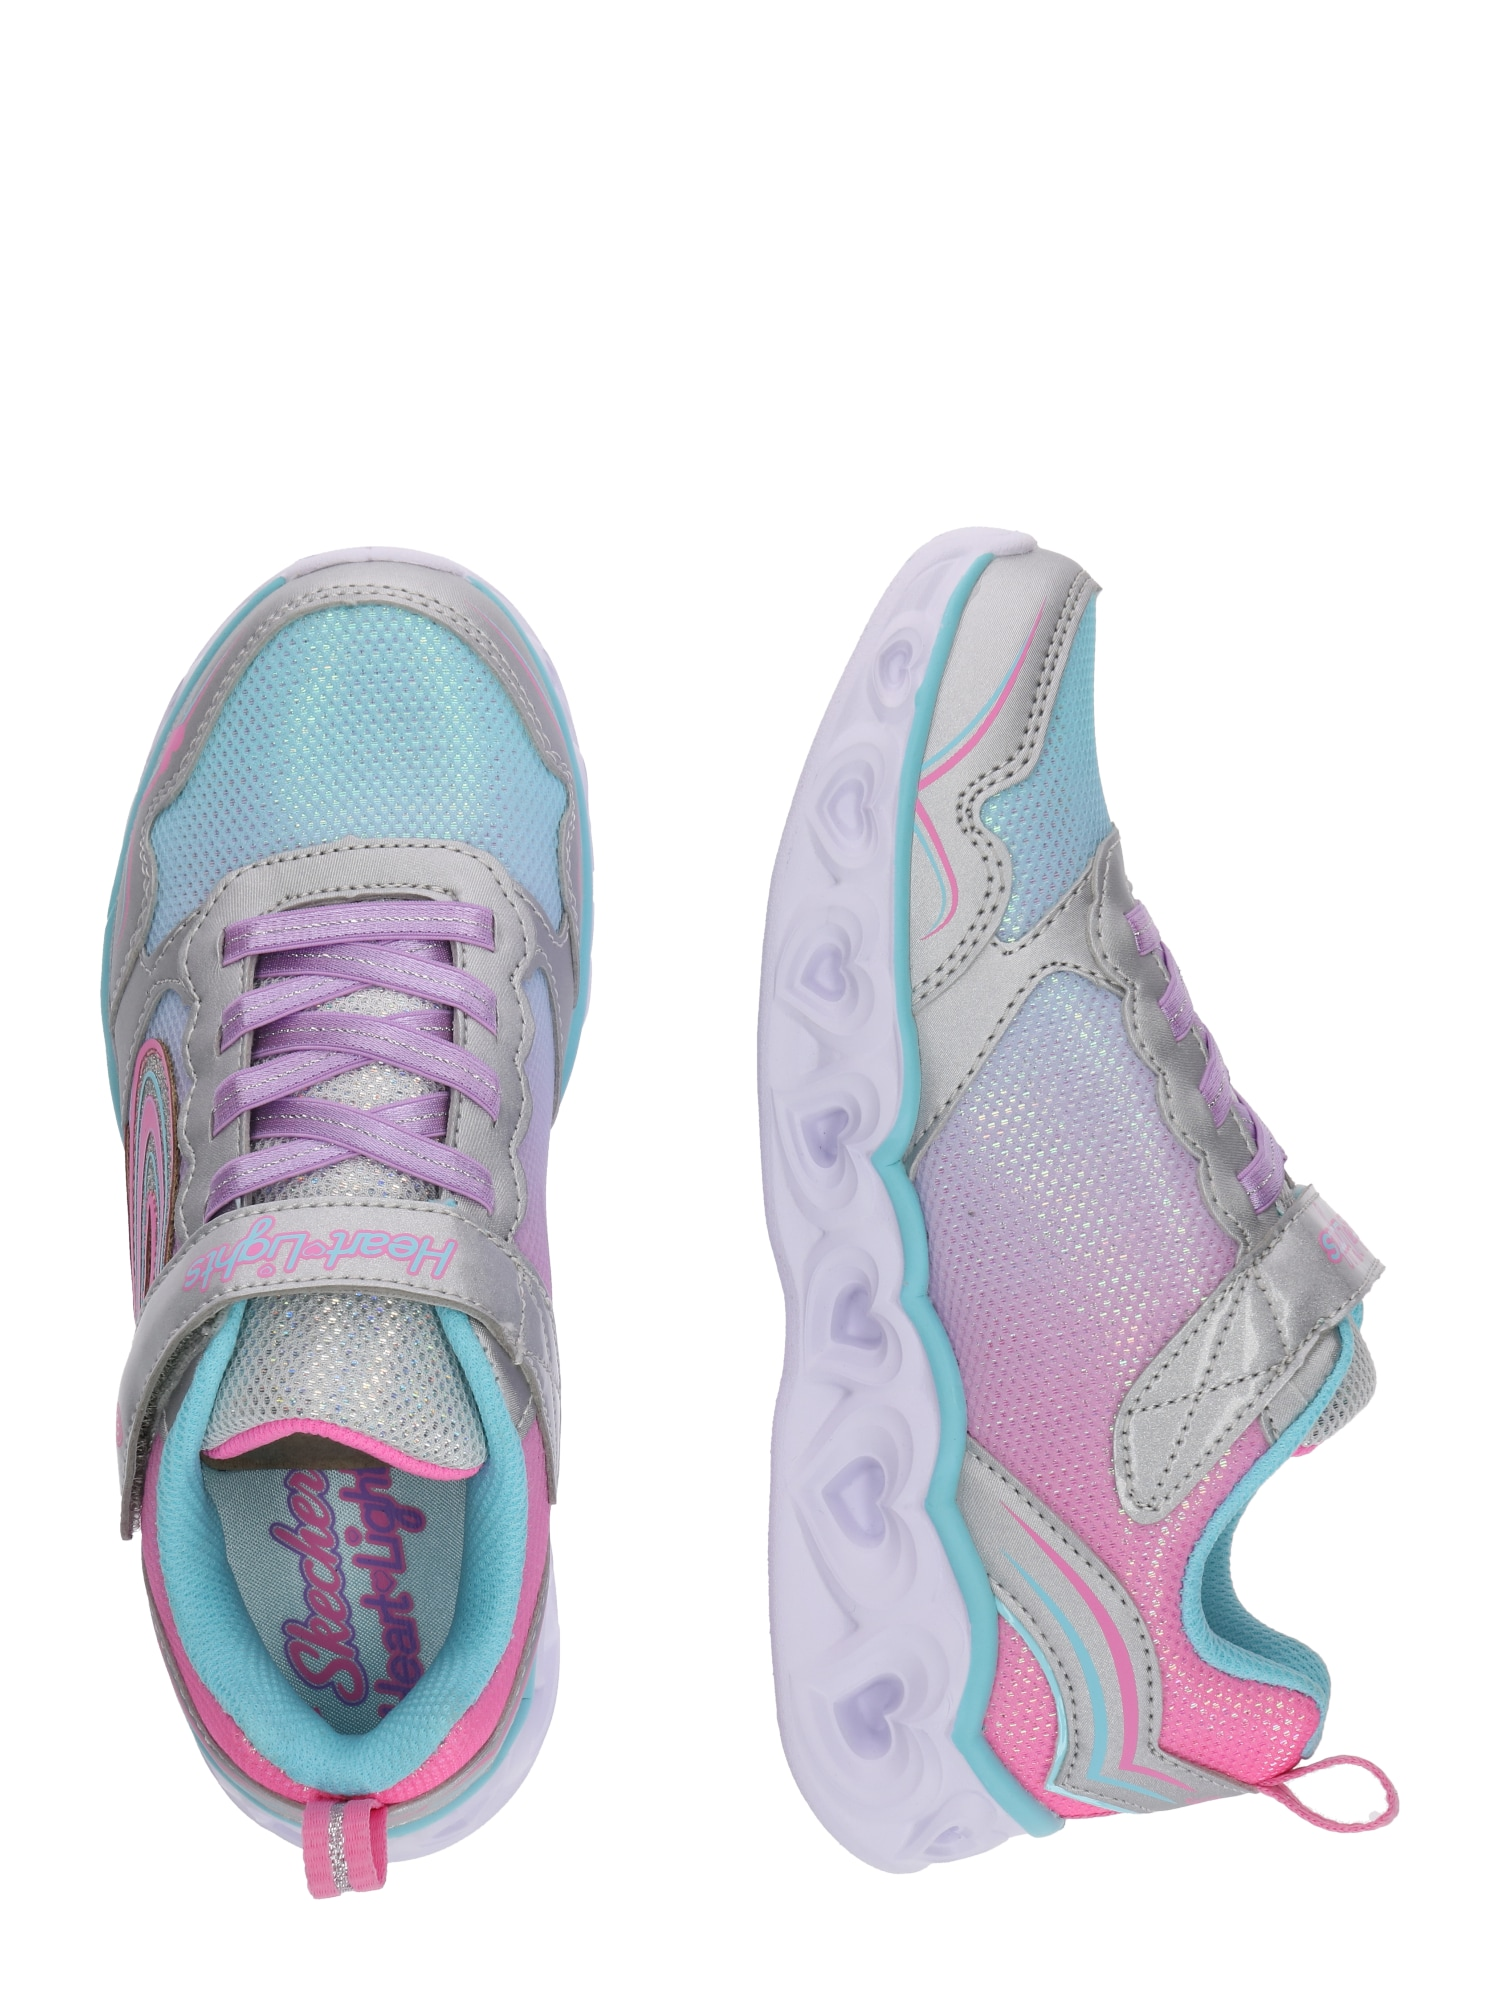 SKECHERS Sneaker 'HEART LIGHTS - LOVE SPARK'  silvergrå / blandade färger